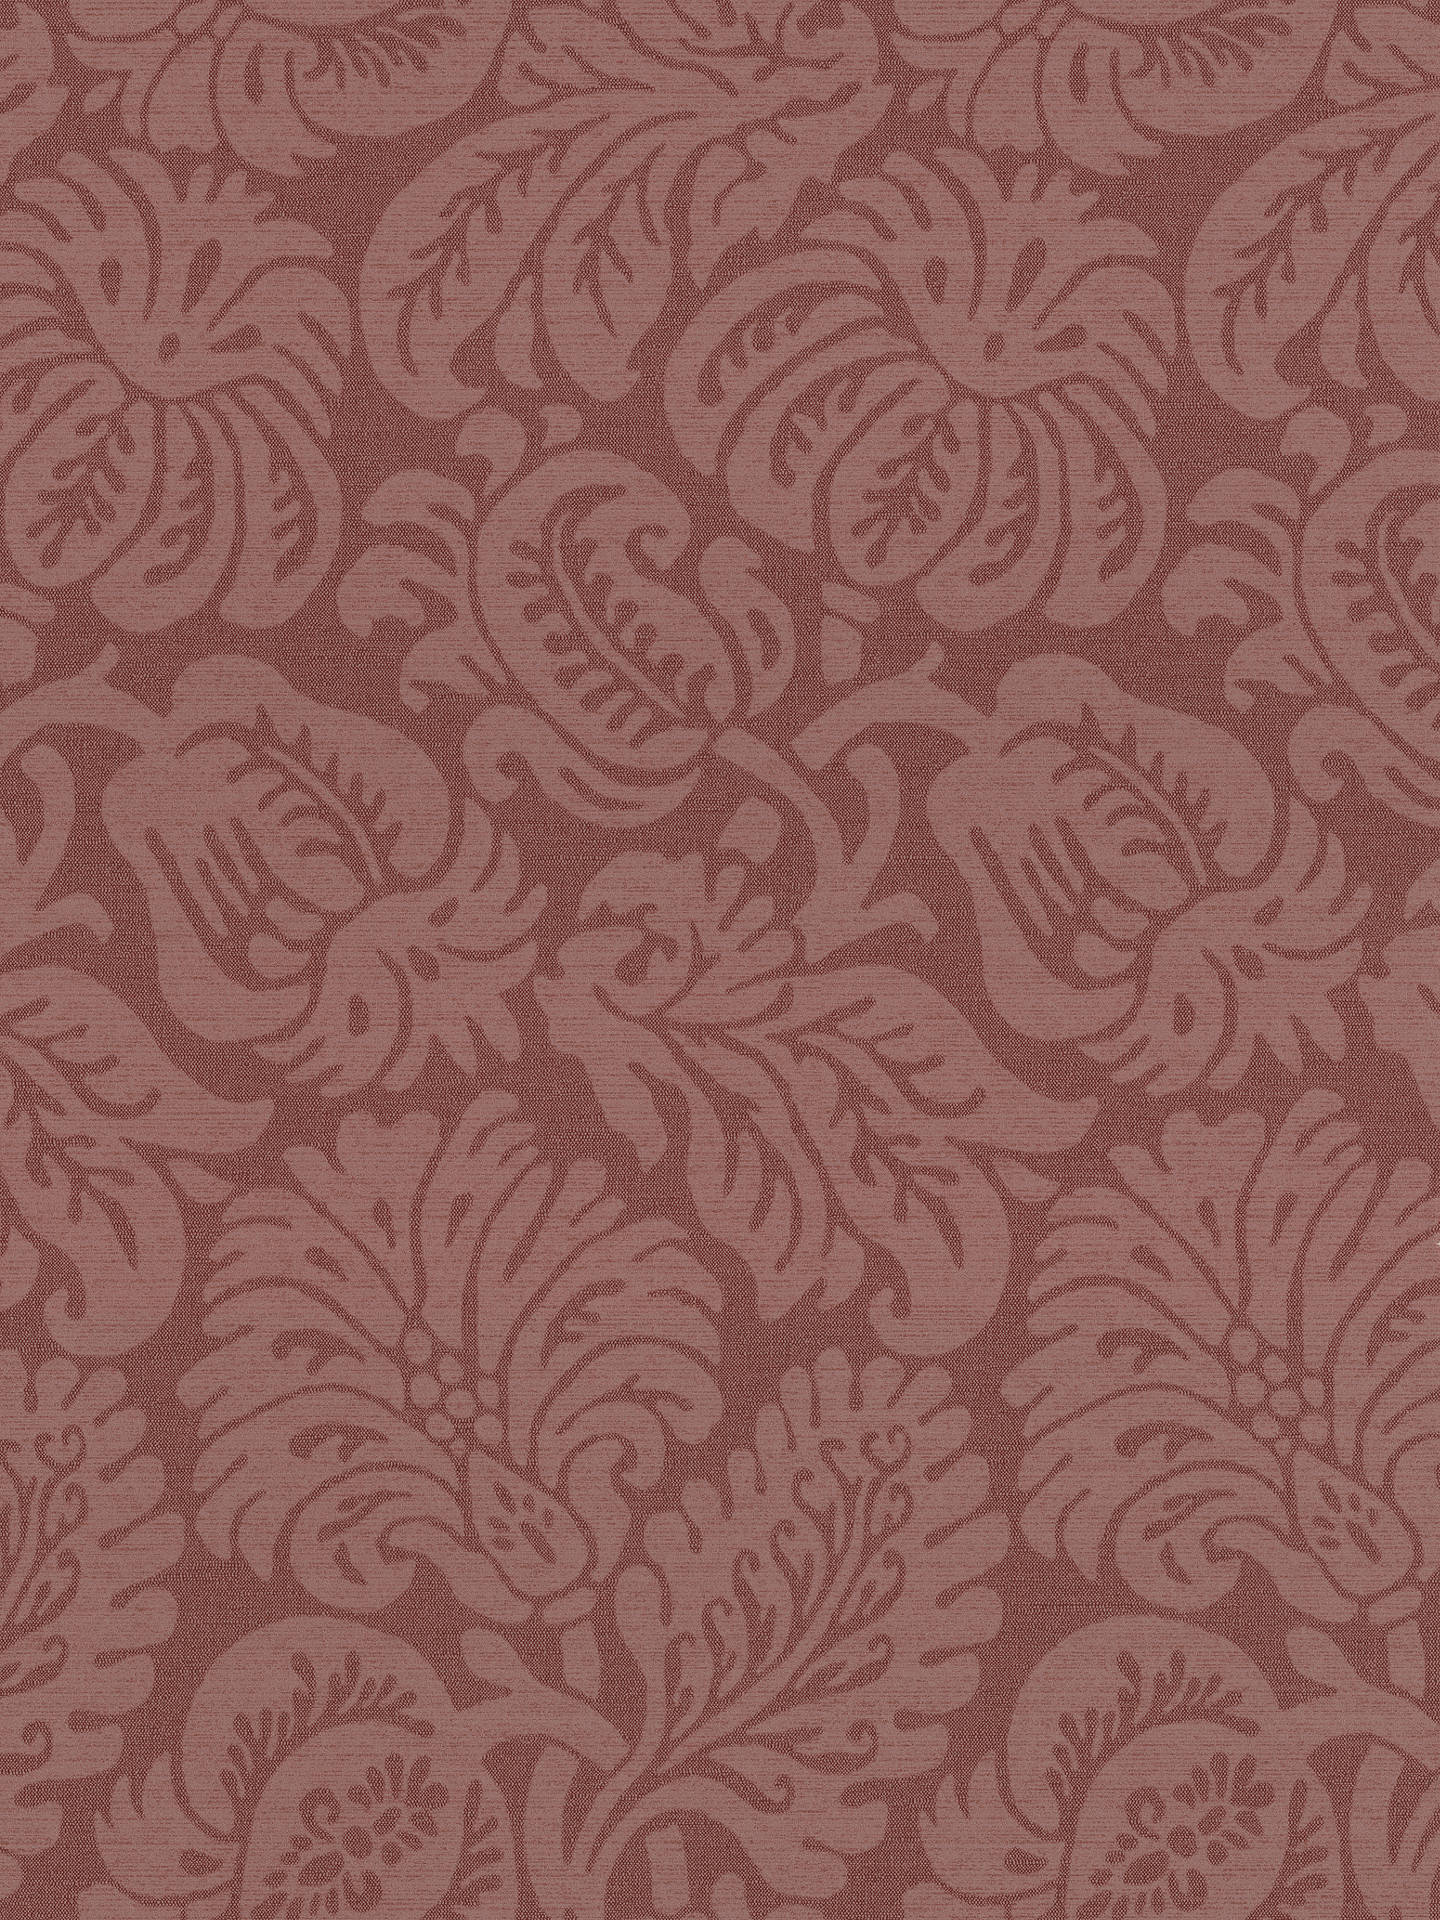 Buy The Little Greene Paint Company Palace Rd. Wallpaper, 0251PRBRIAR Online at johnlewis.com